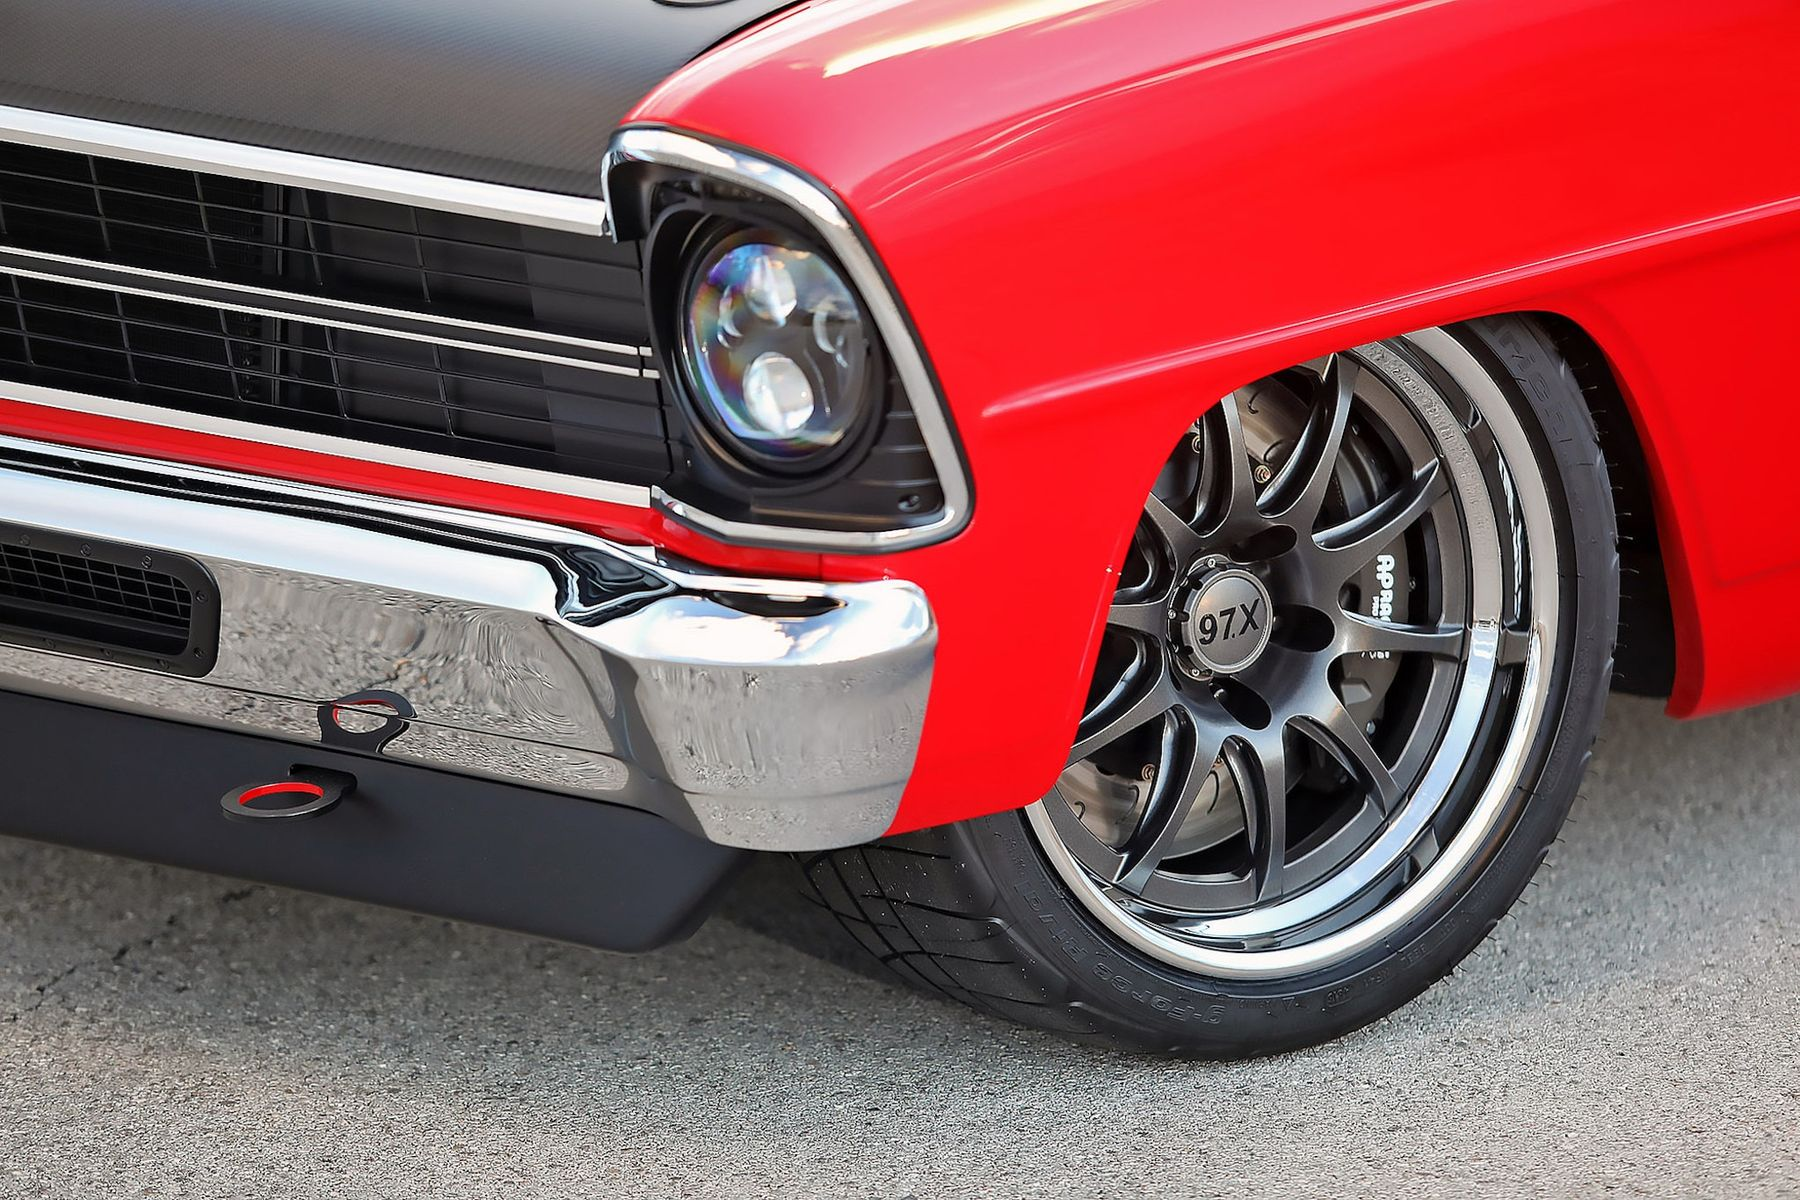 1967 Chevrolet Nova | Bob Gawlik's Detroit Speed '67 Chevy II on Forgeline GZ3R Wheels